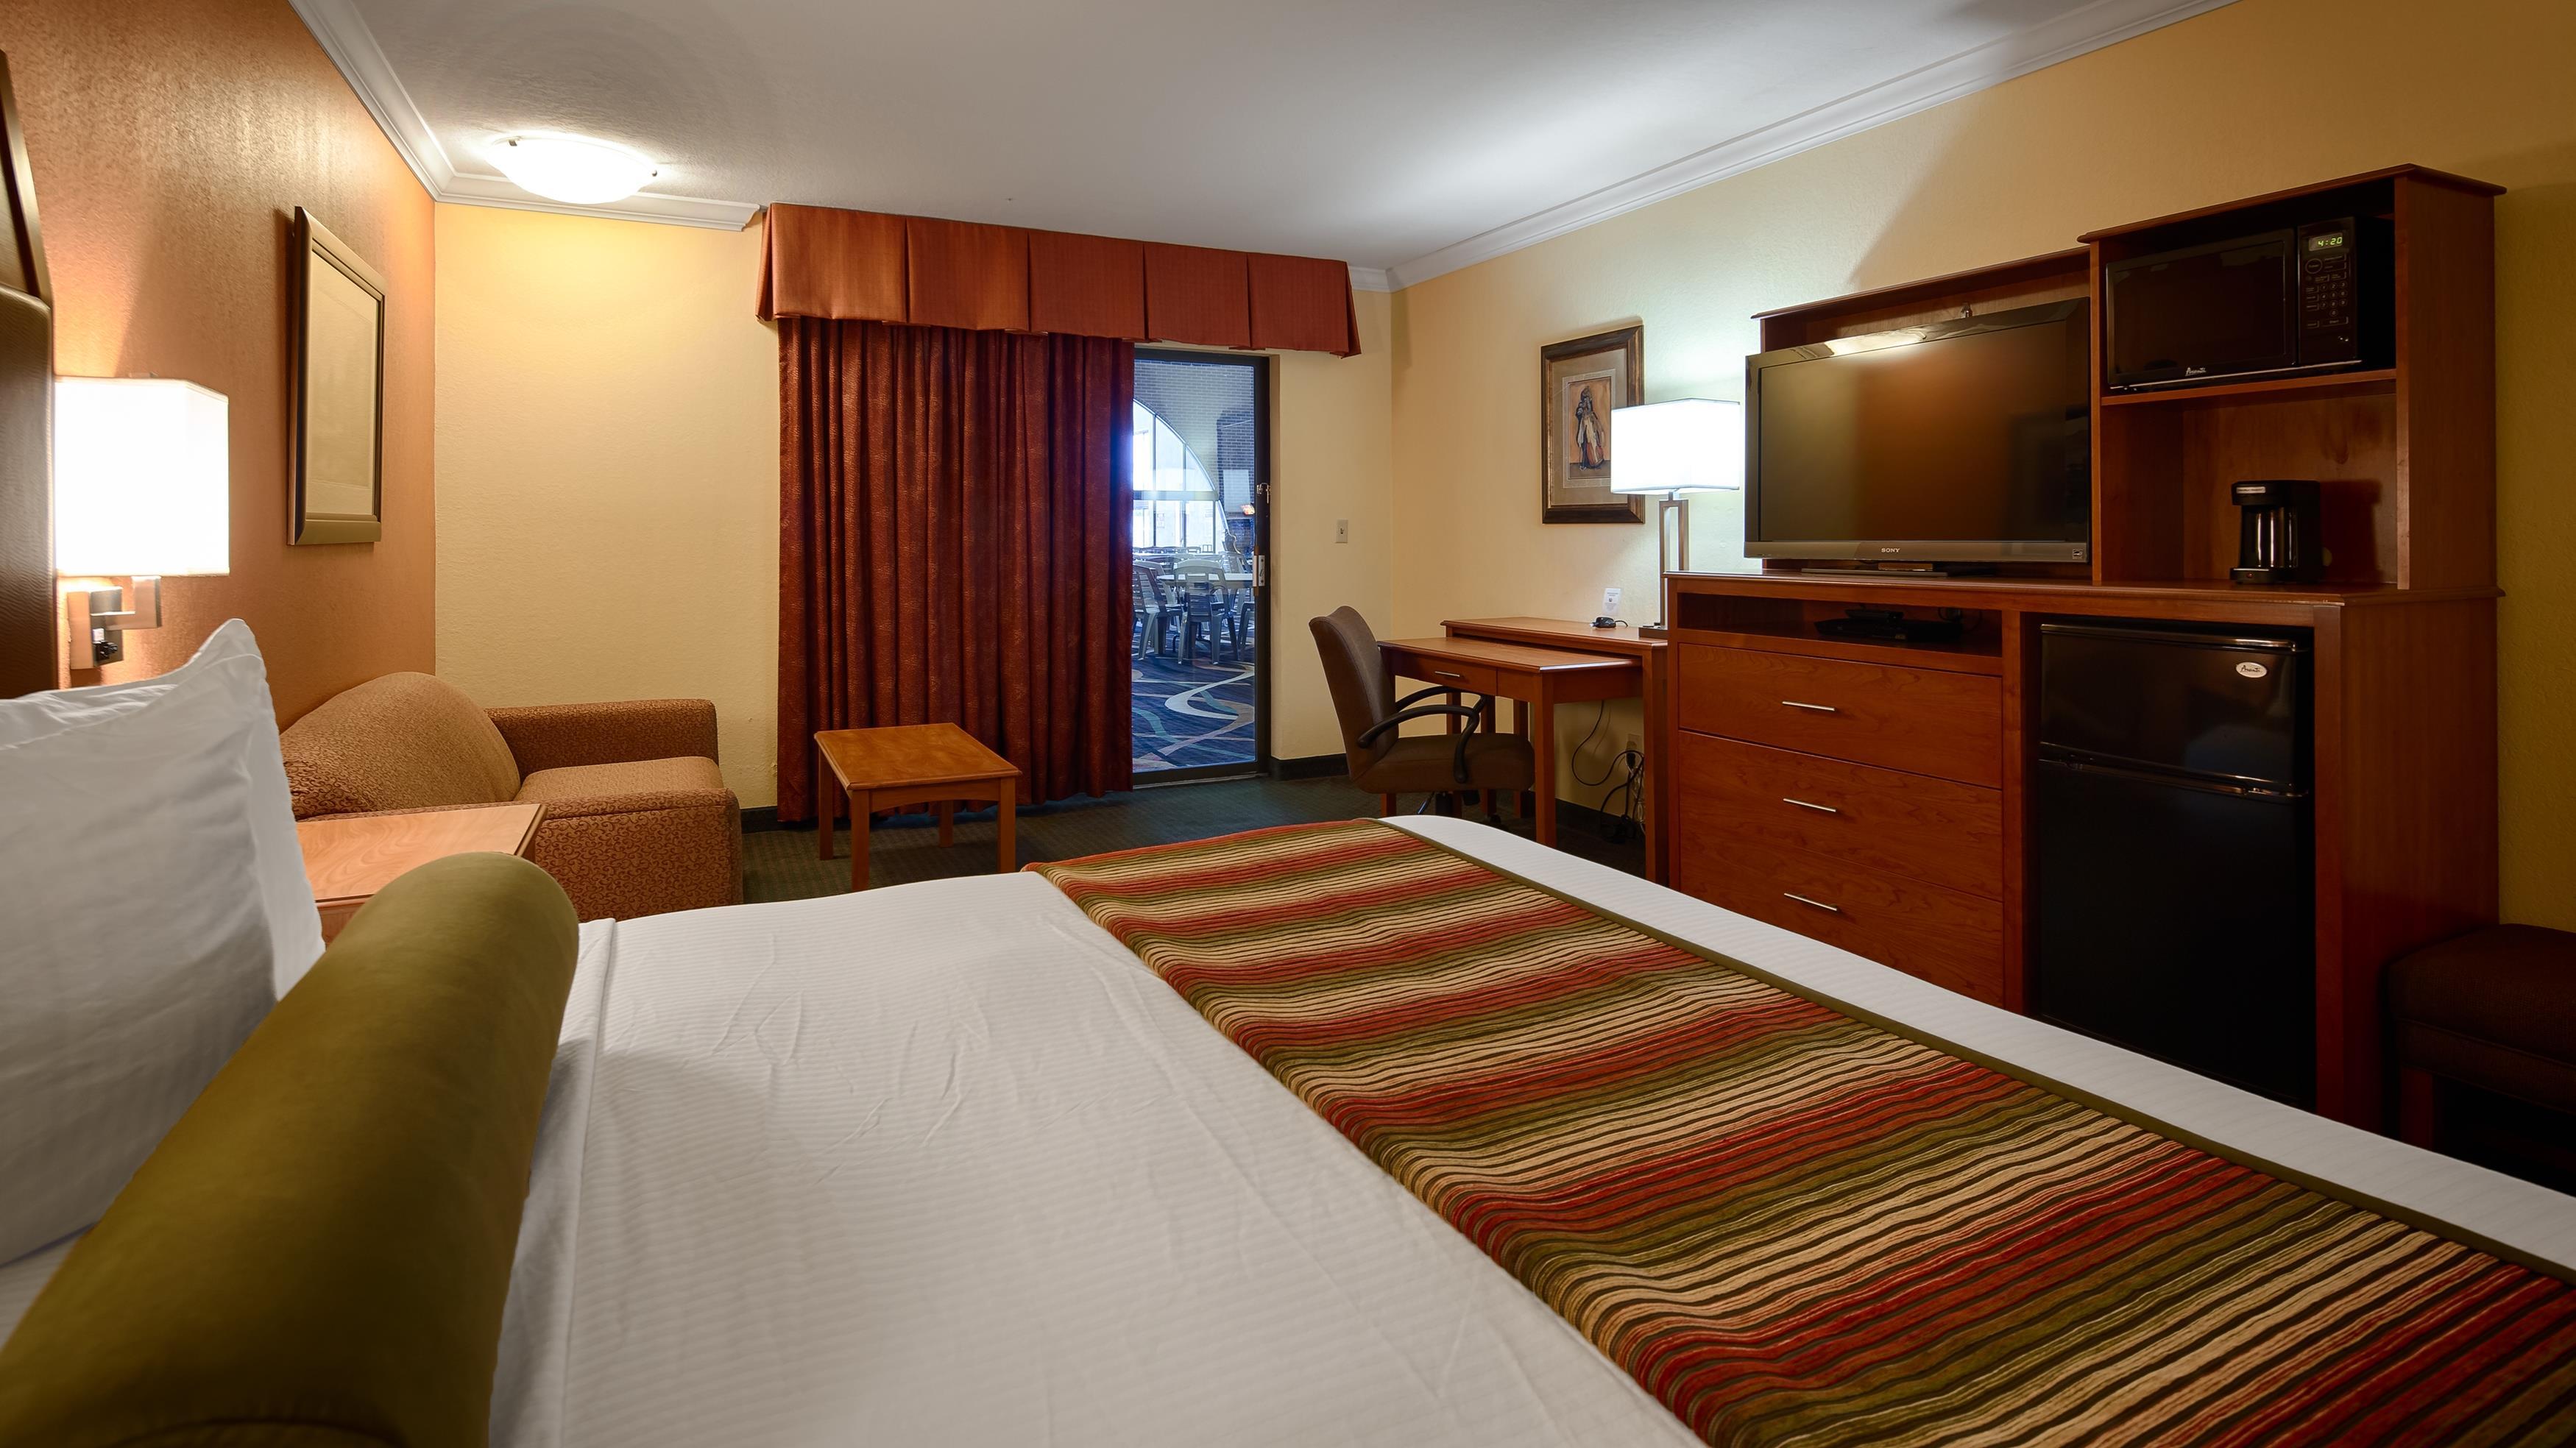 Best Western Angus Inn, Great Bend KS